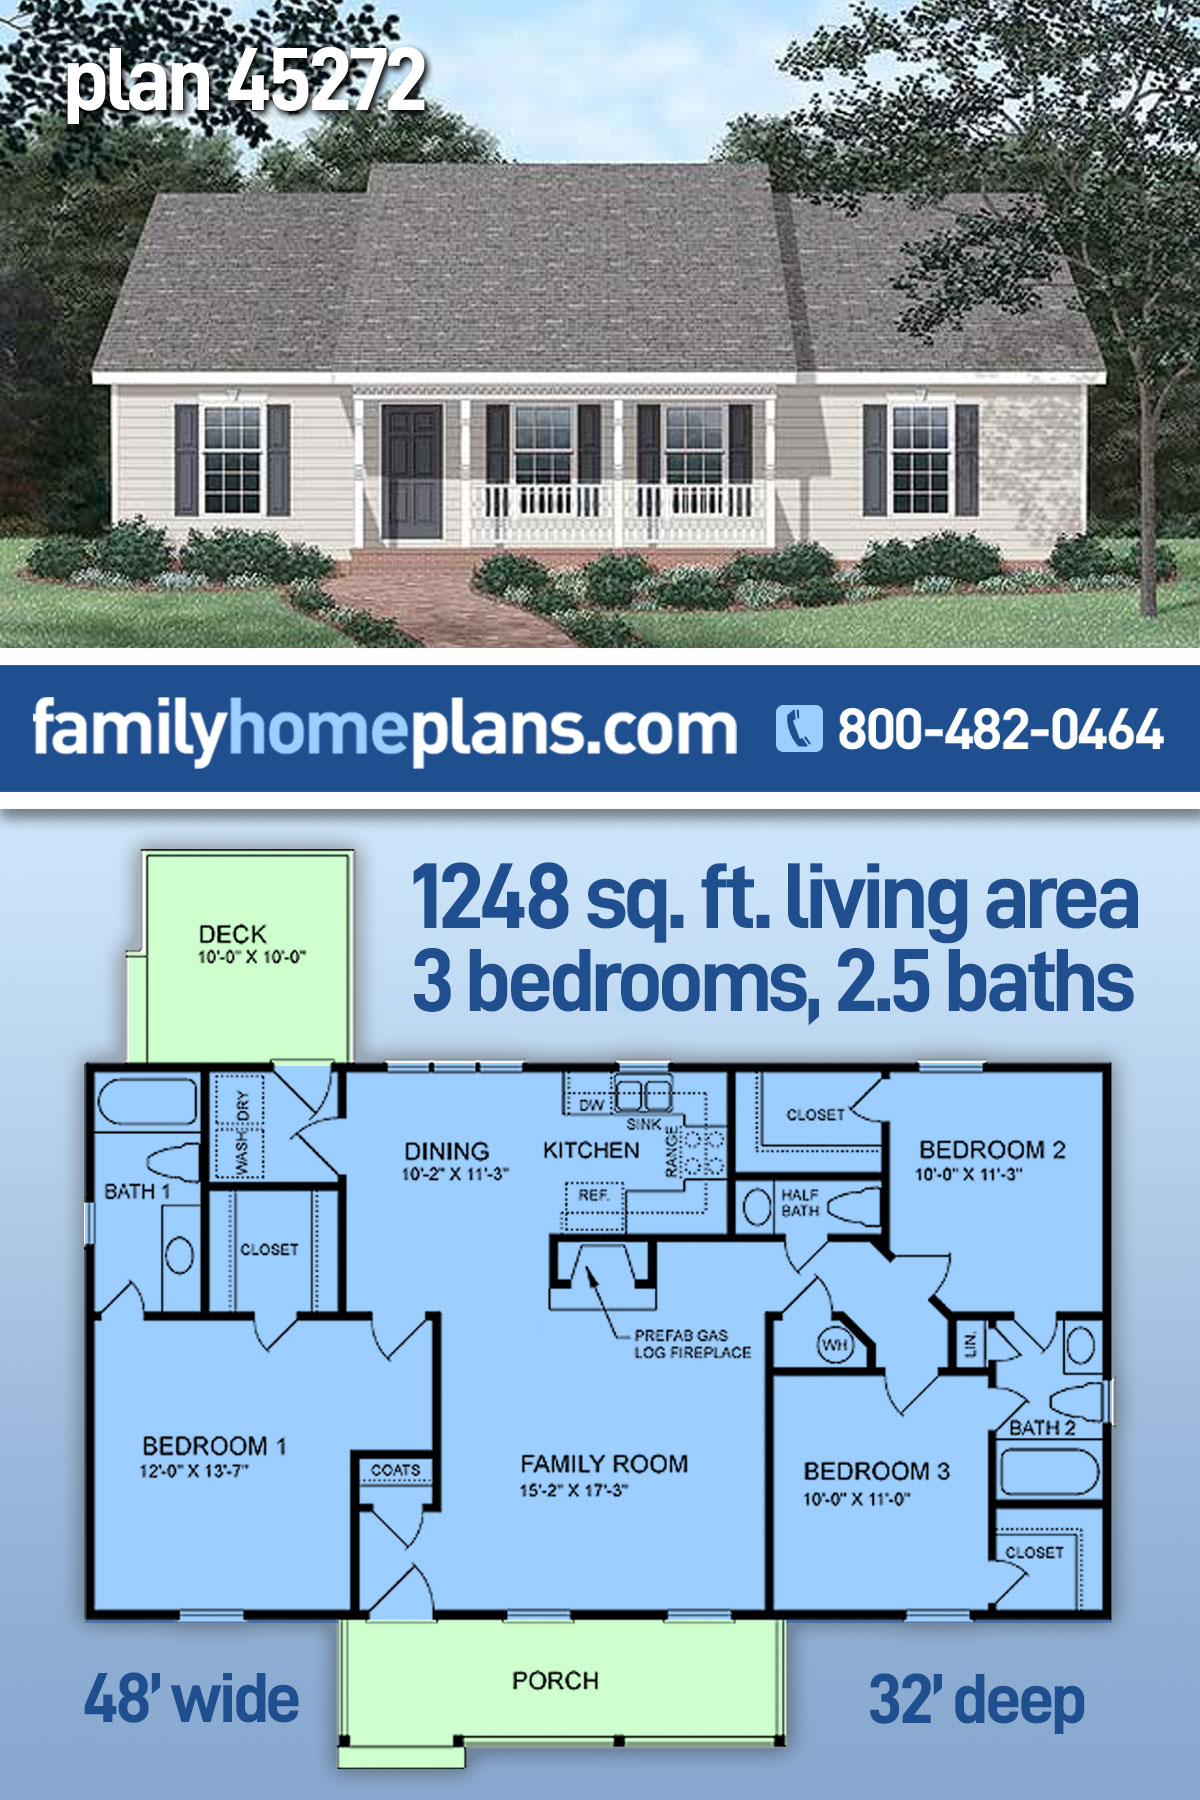 Ranch House Plan 45272 with 3 Beds, 3 Baths